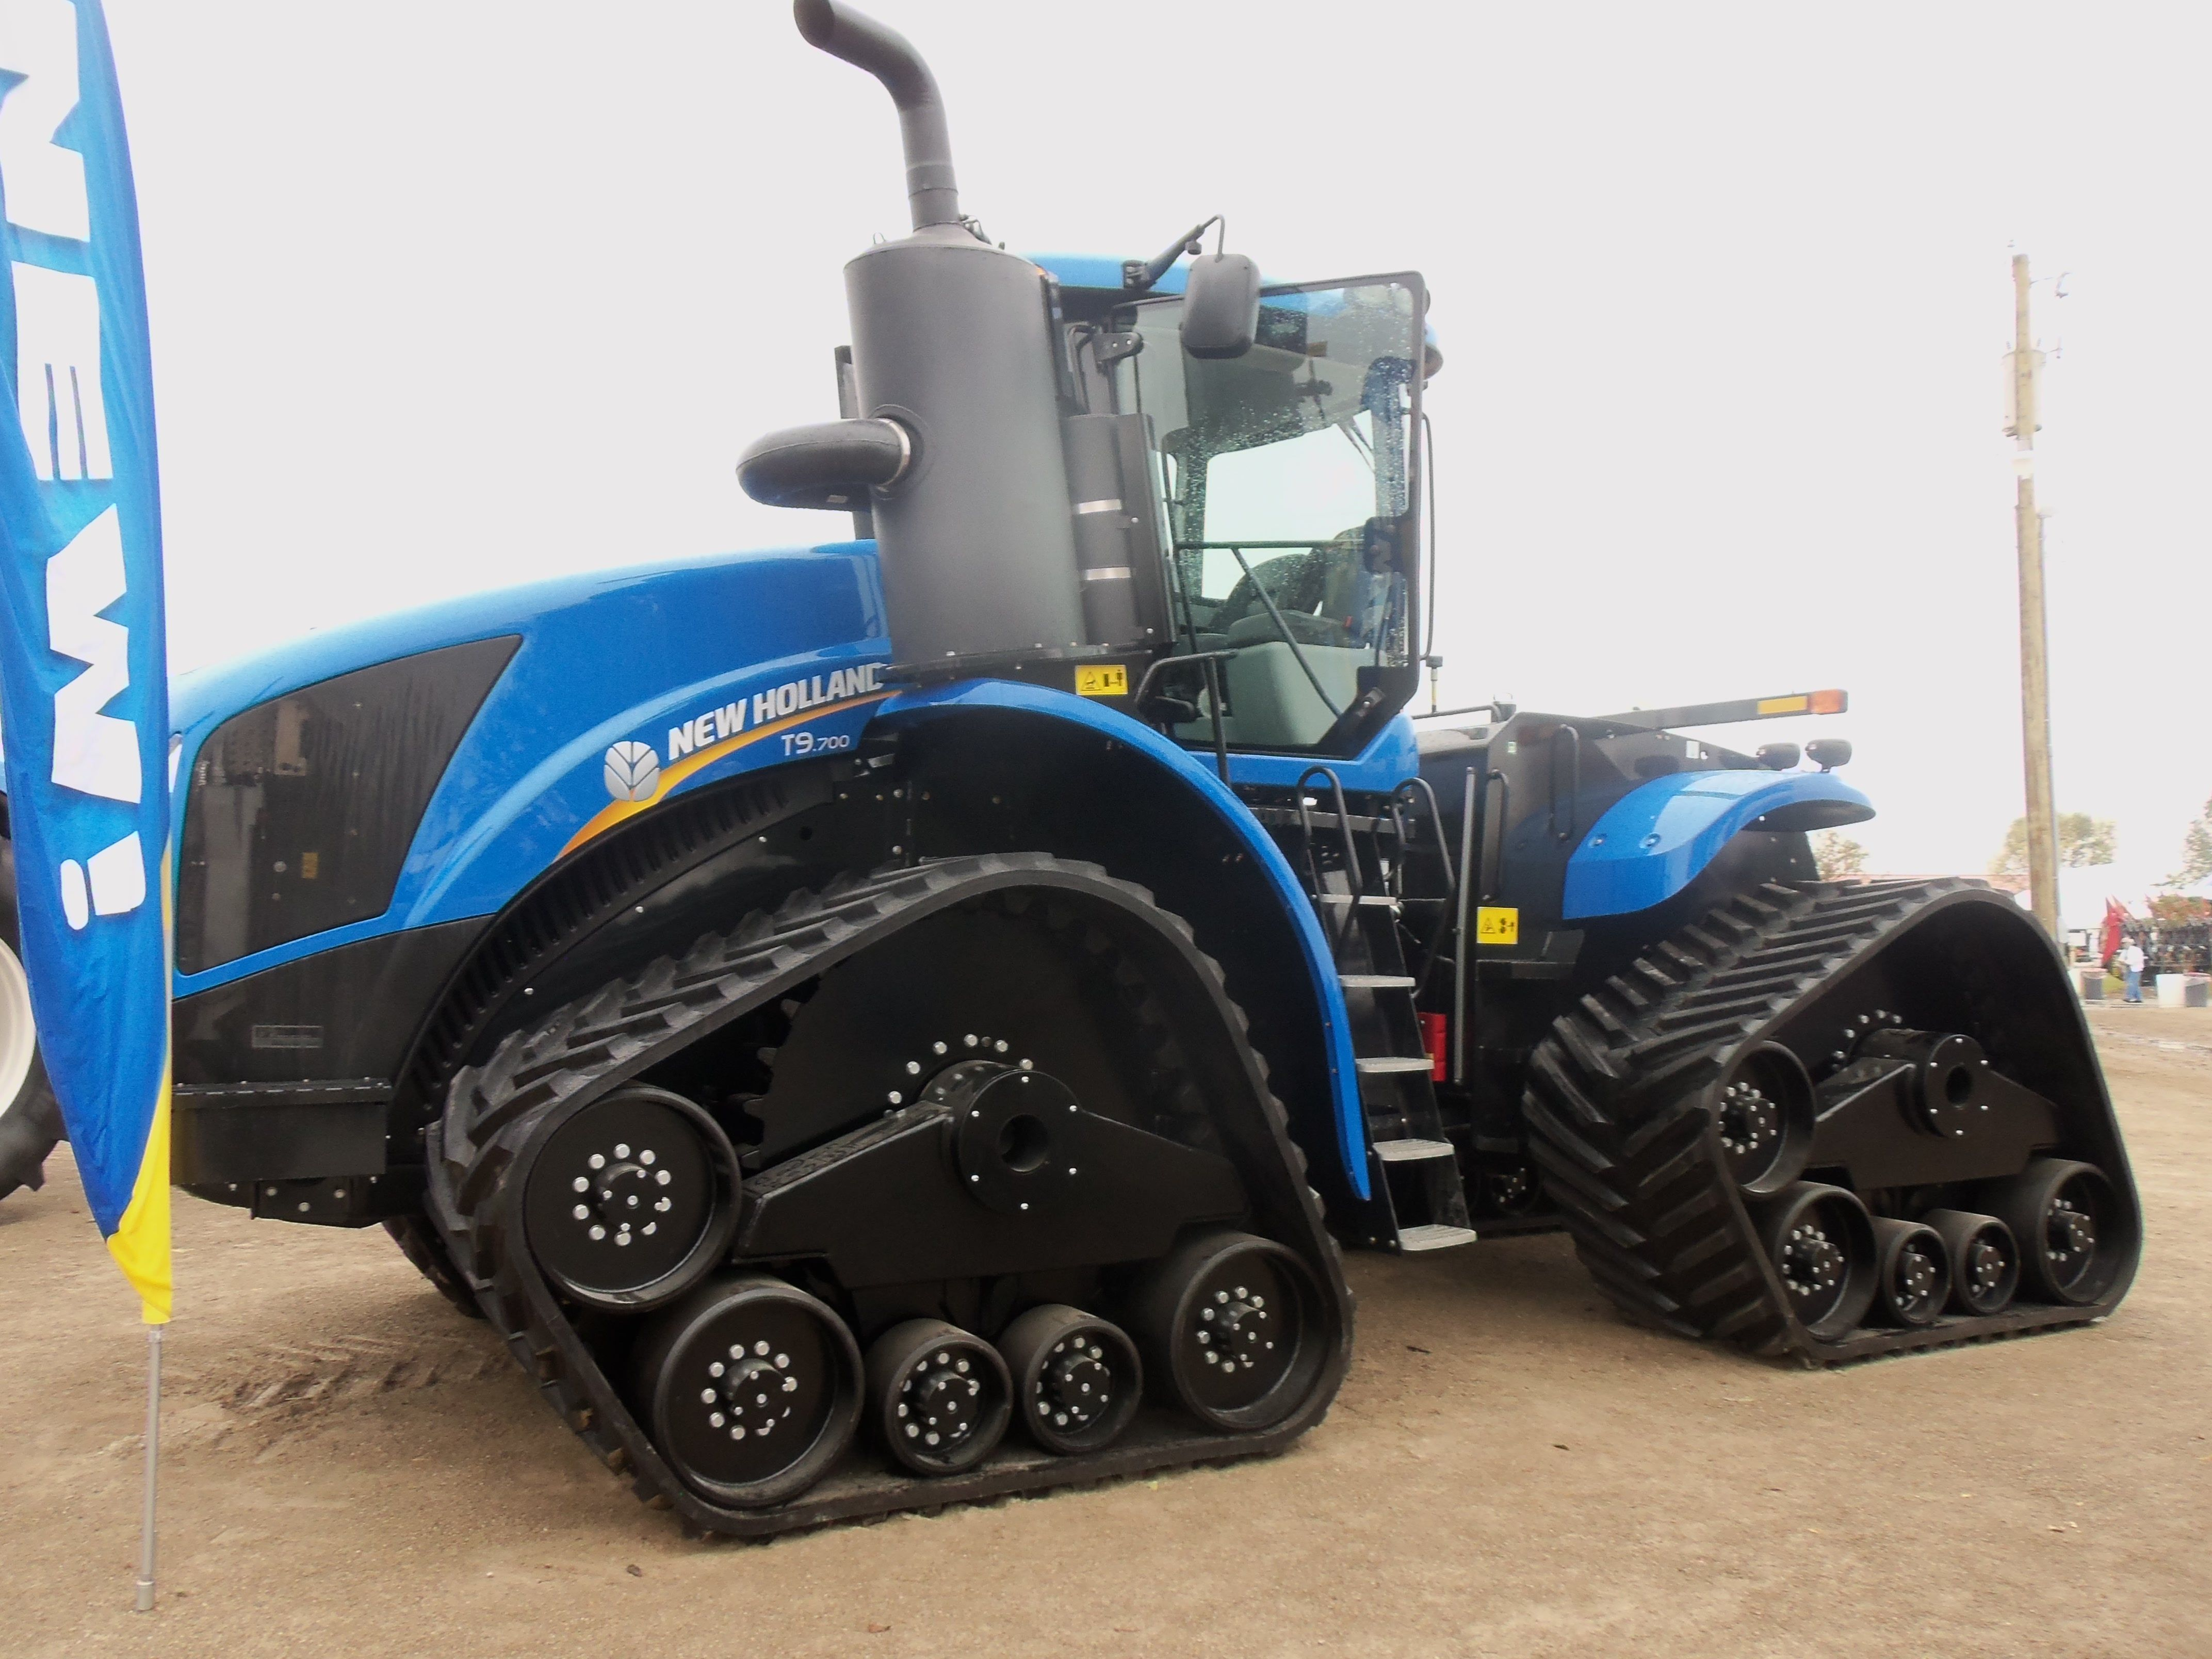 New Holland T9 700 Track Tractor New Holland Farm